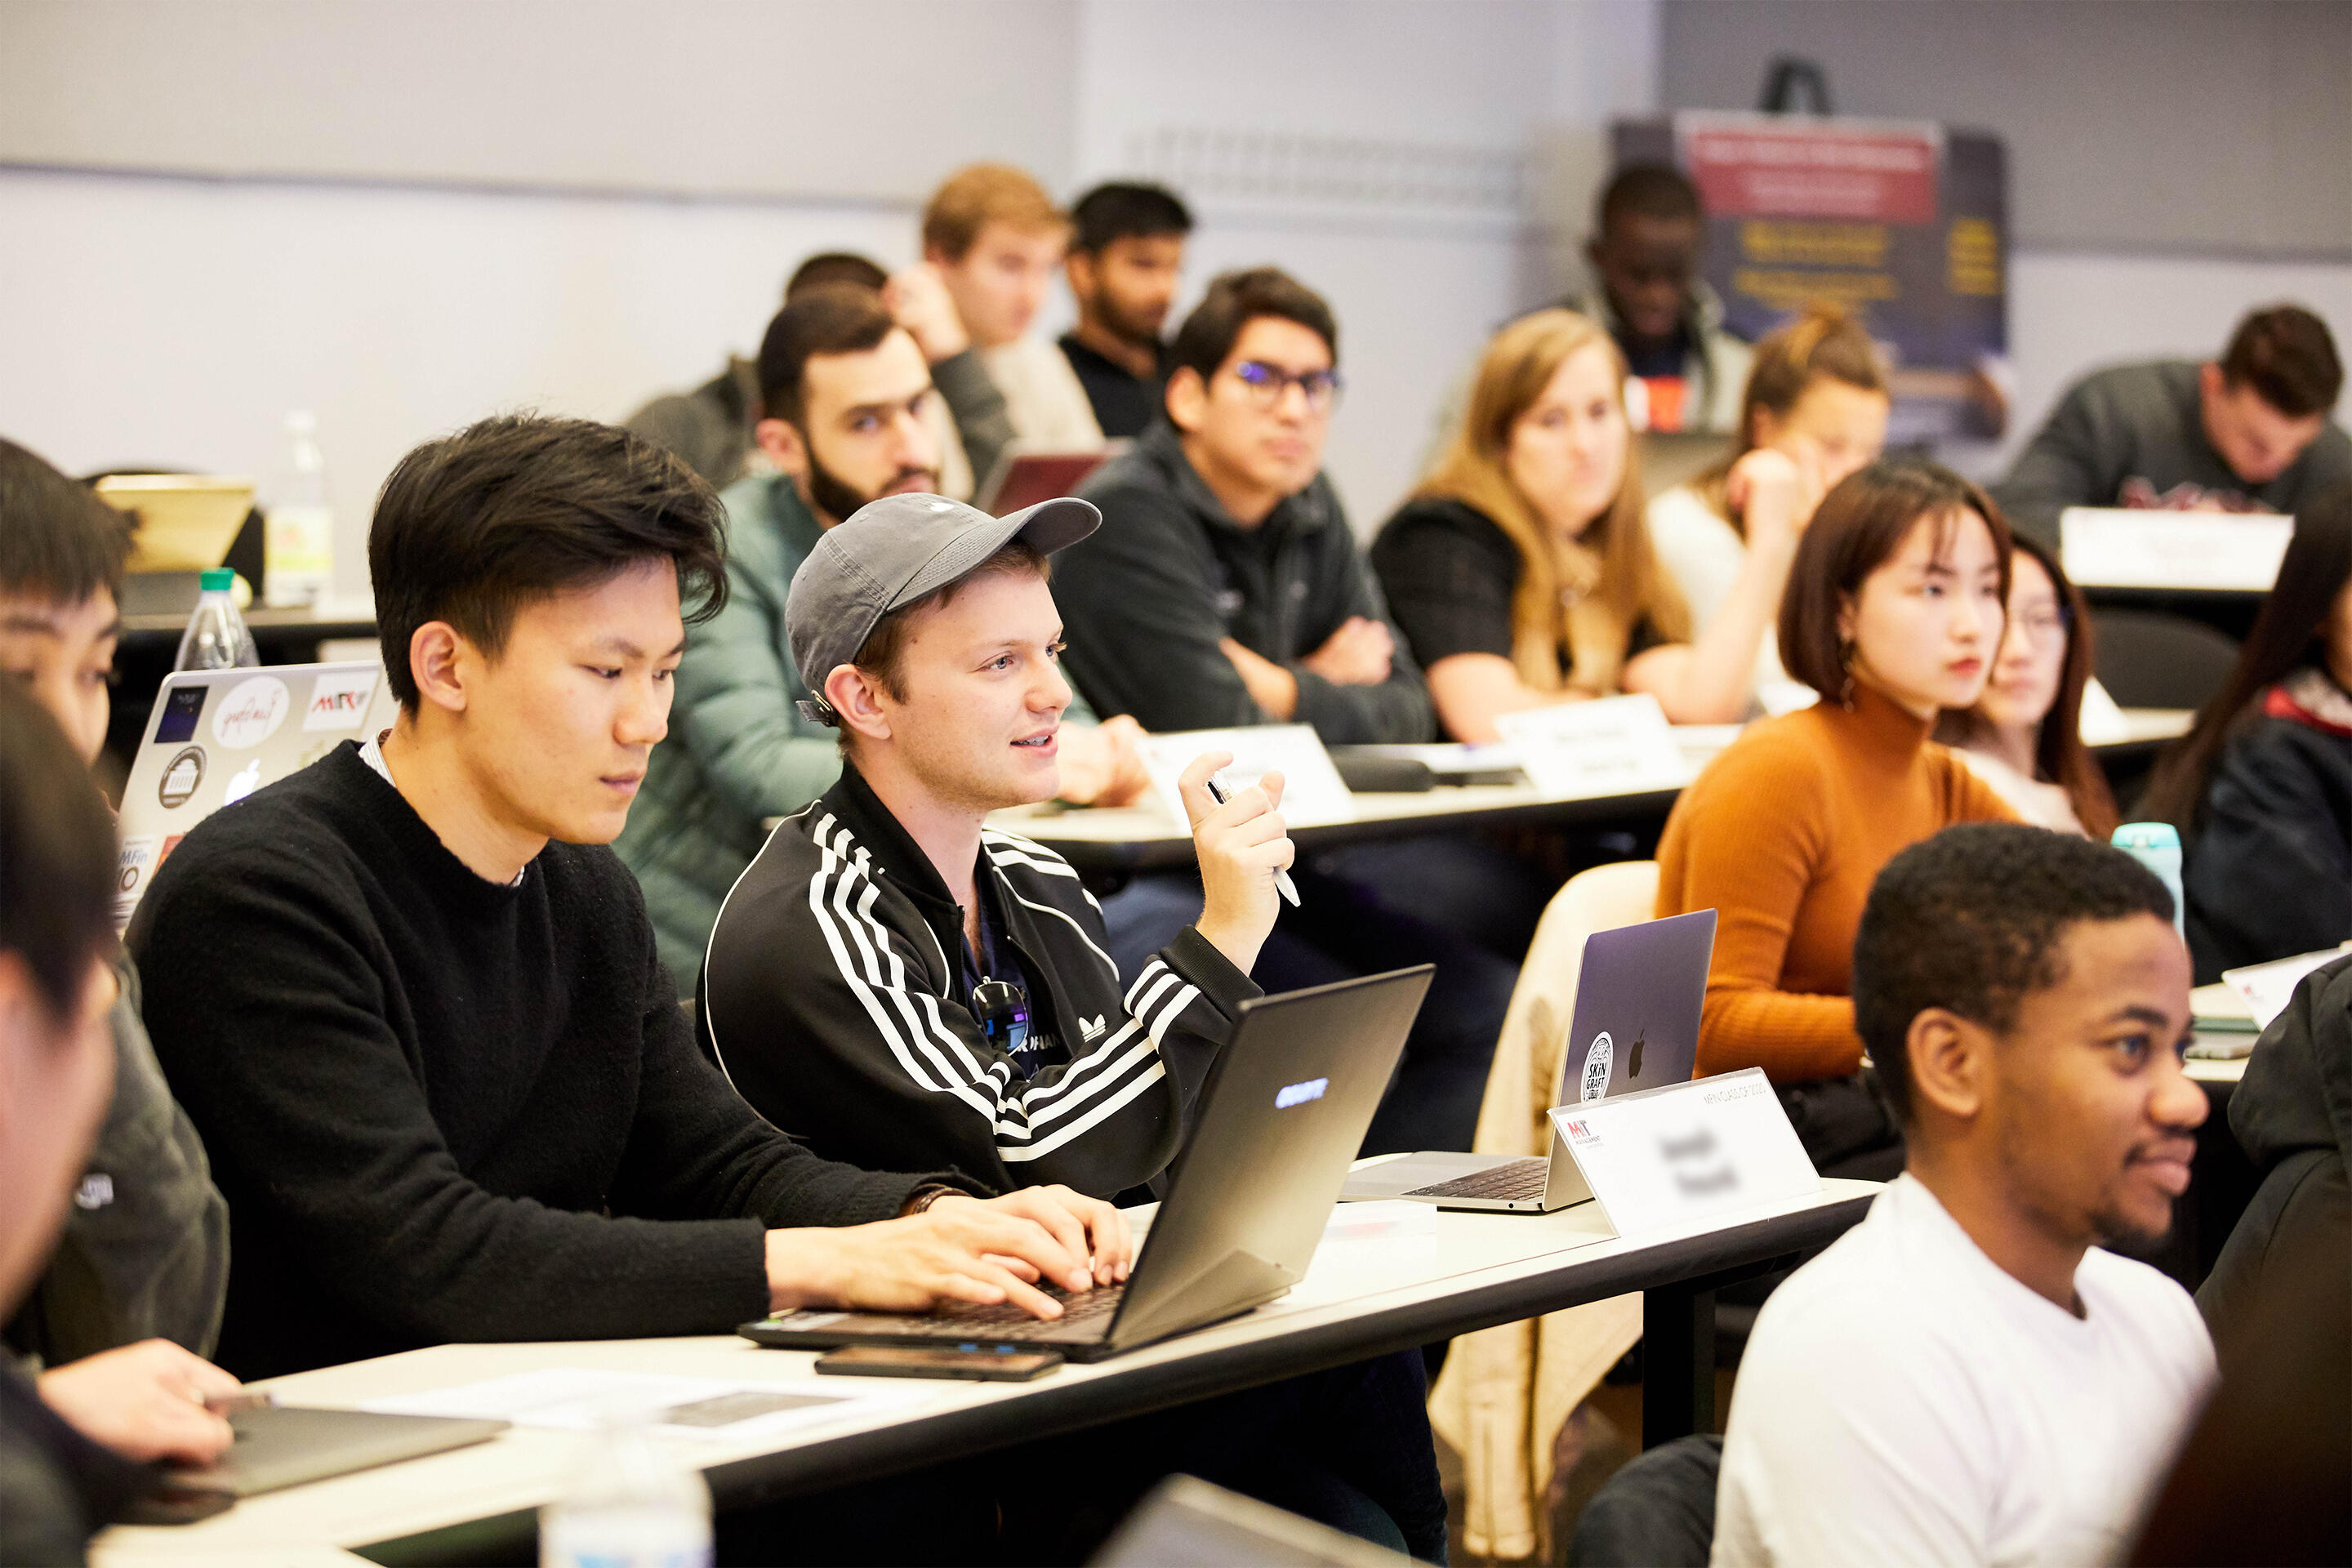 MIT Sloan finance students in classroom